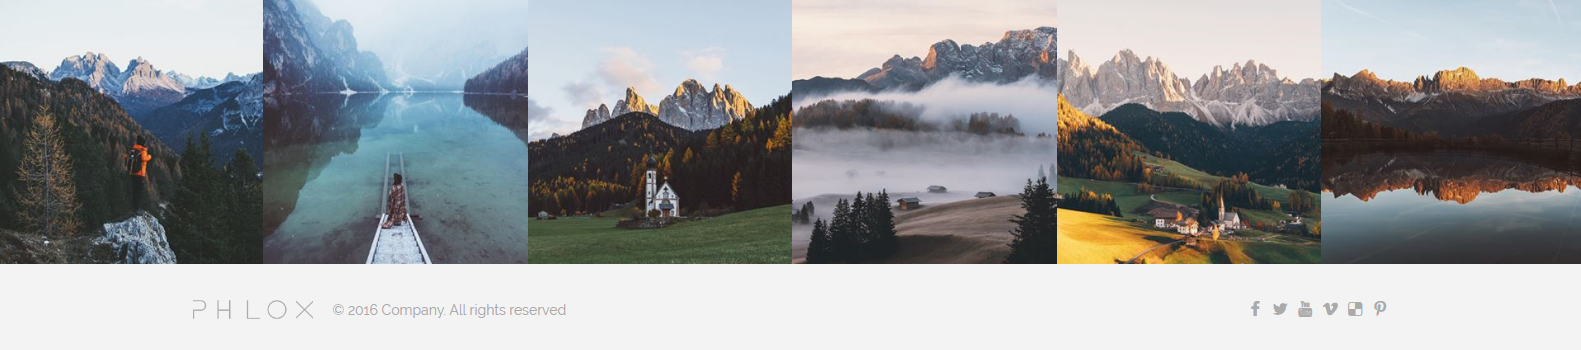 instagram-feed-preview